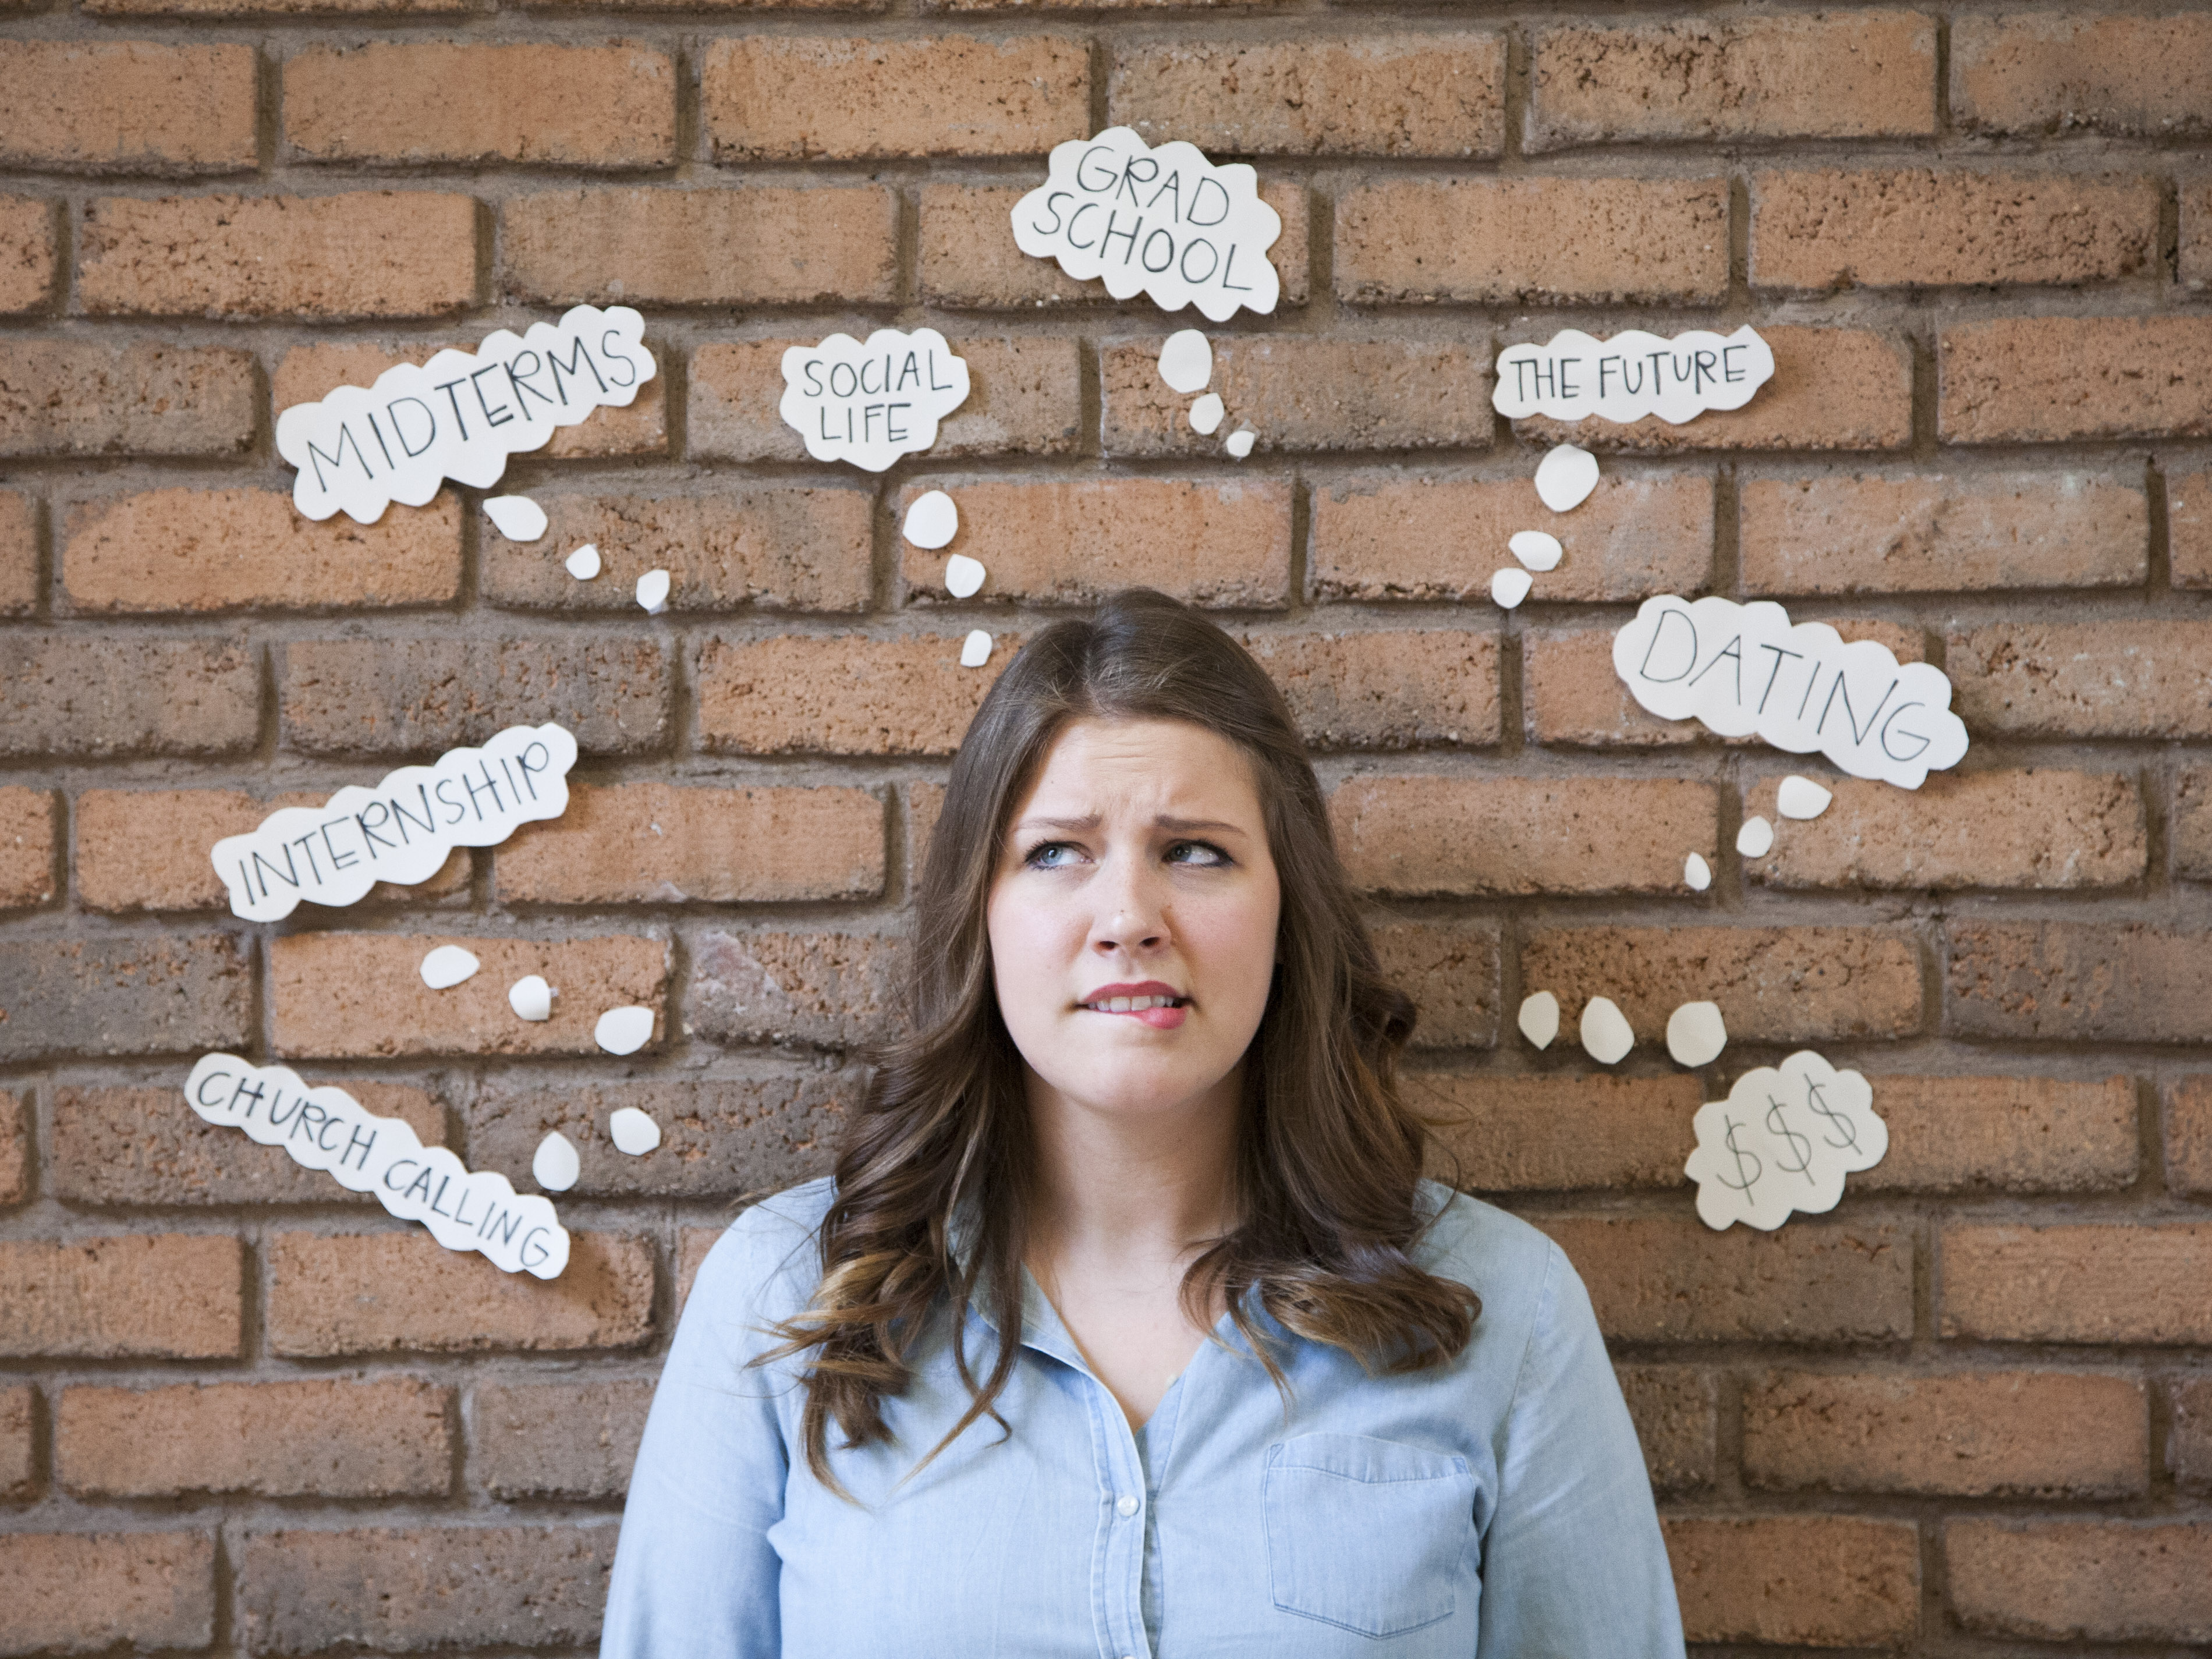 Genevieve Gantt mulls over the parts of her life that stress her out. BYU offers free resources to help combat stress levels.